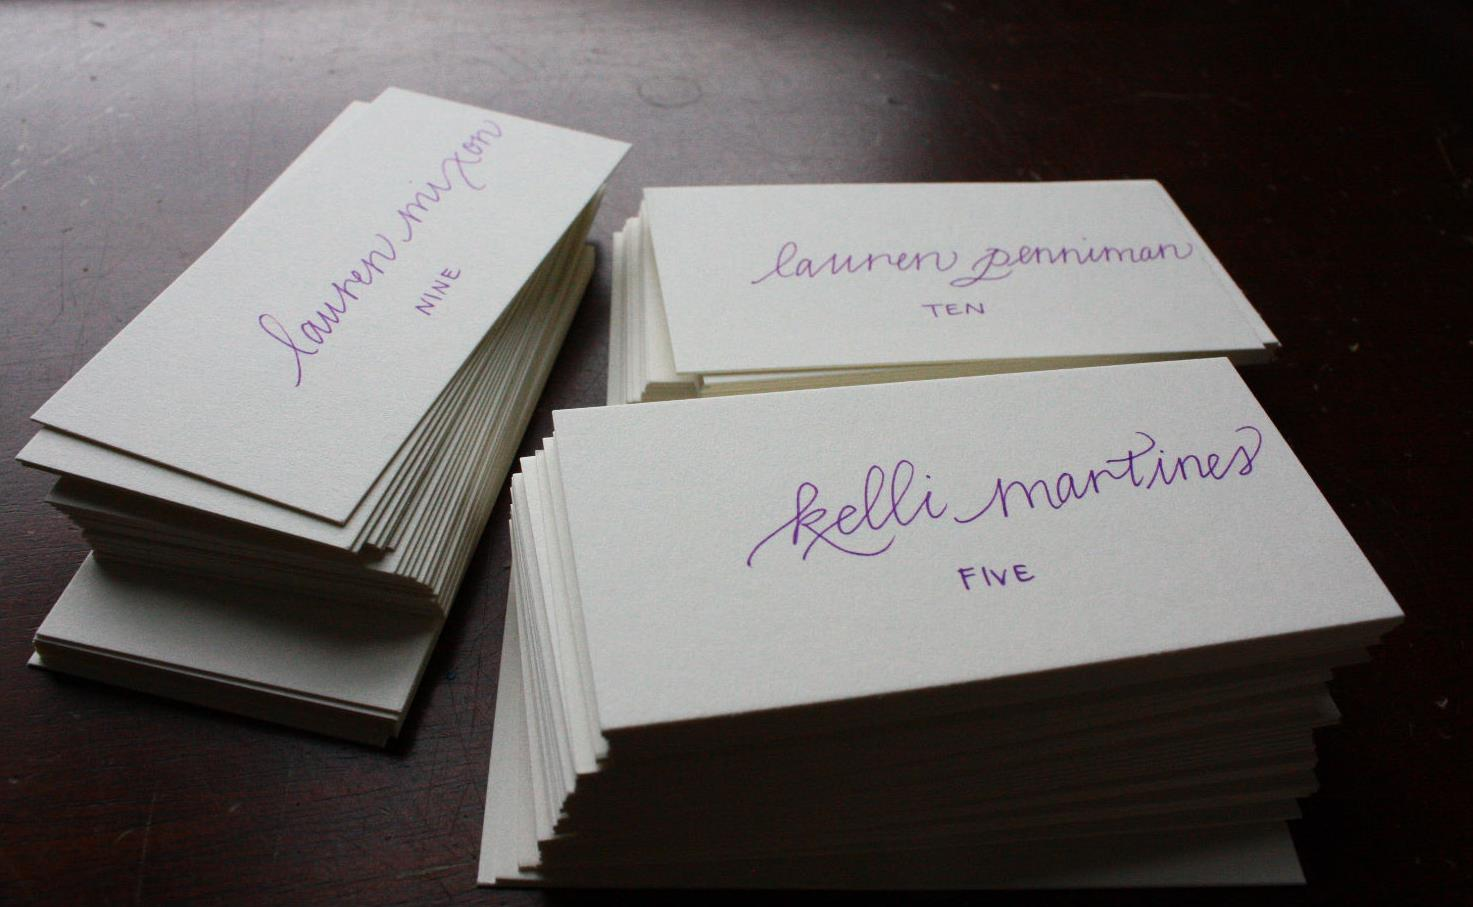 Escort cards, which will be turned into little flags that will be stuck in succulent pots. Such a cute idea!